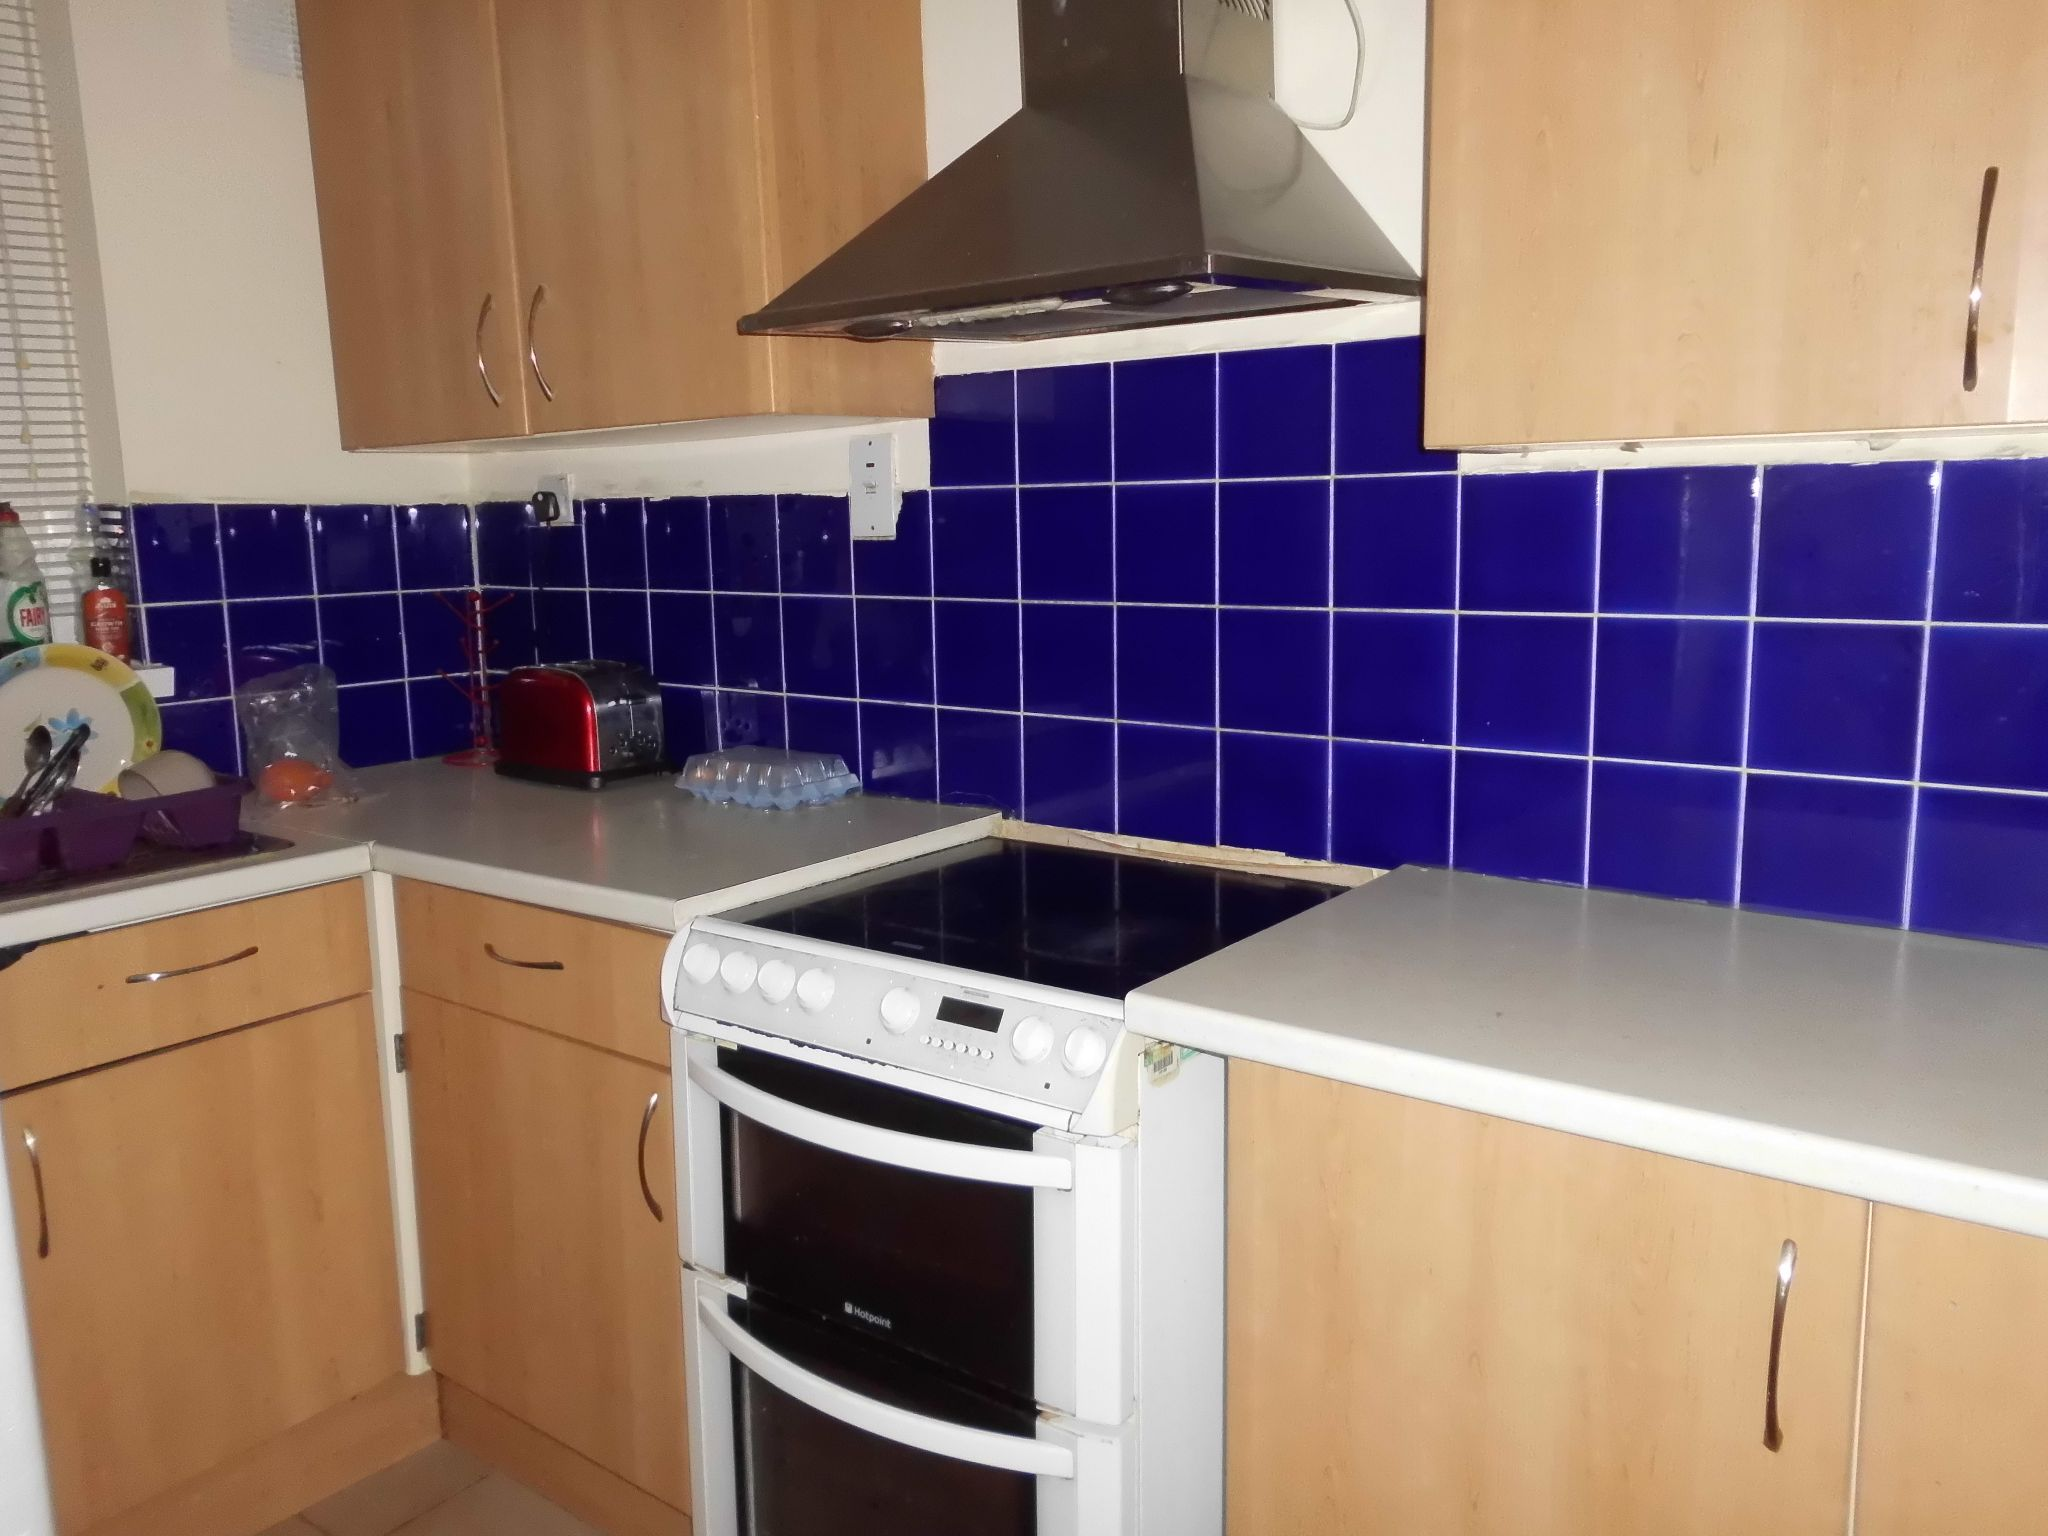 1 bedroom flat flat/apartment For Sale in Leicester - Photograph 4.